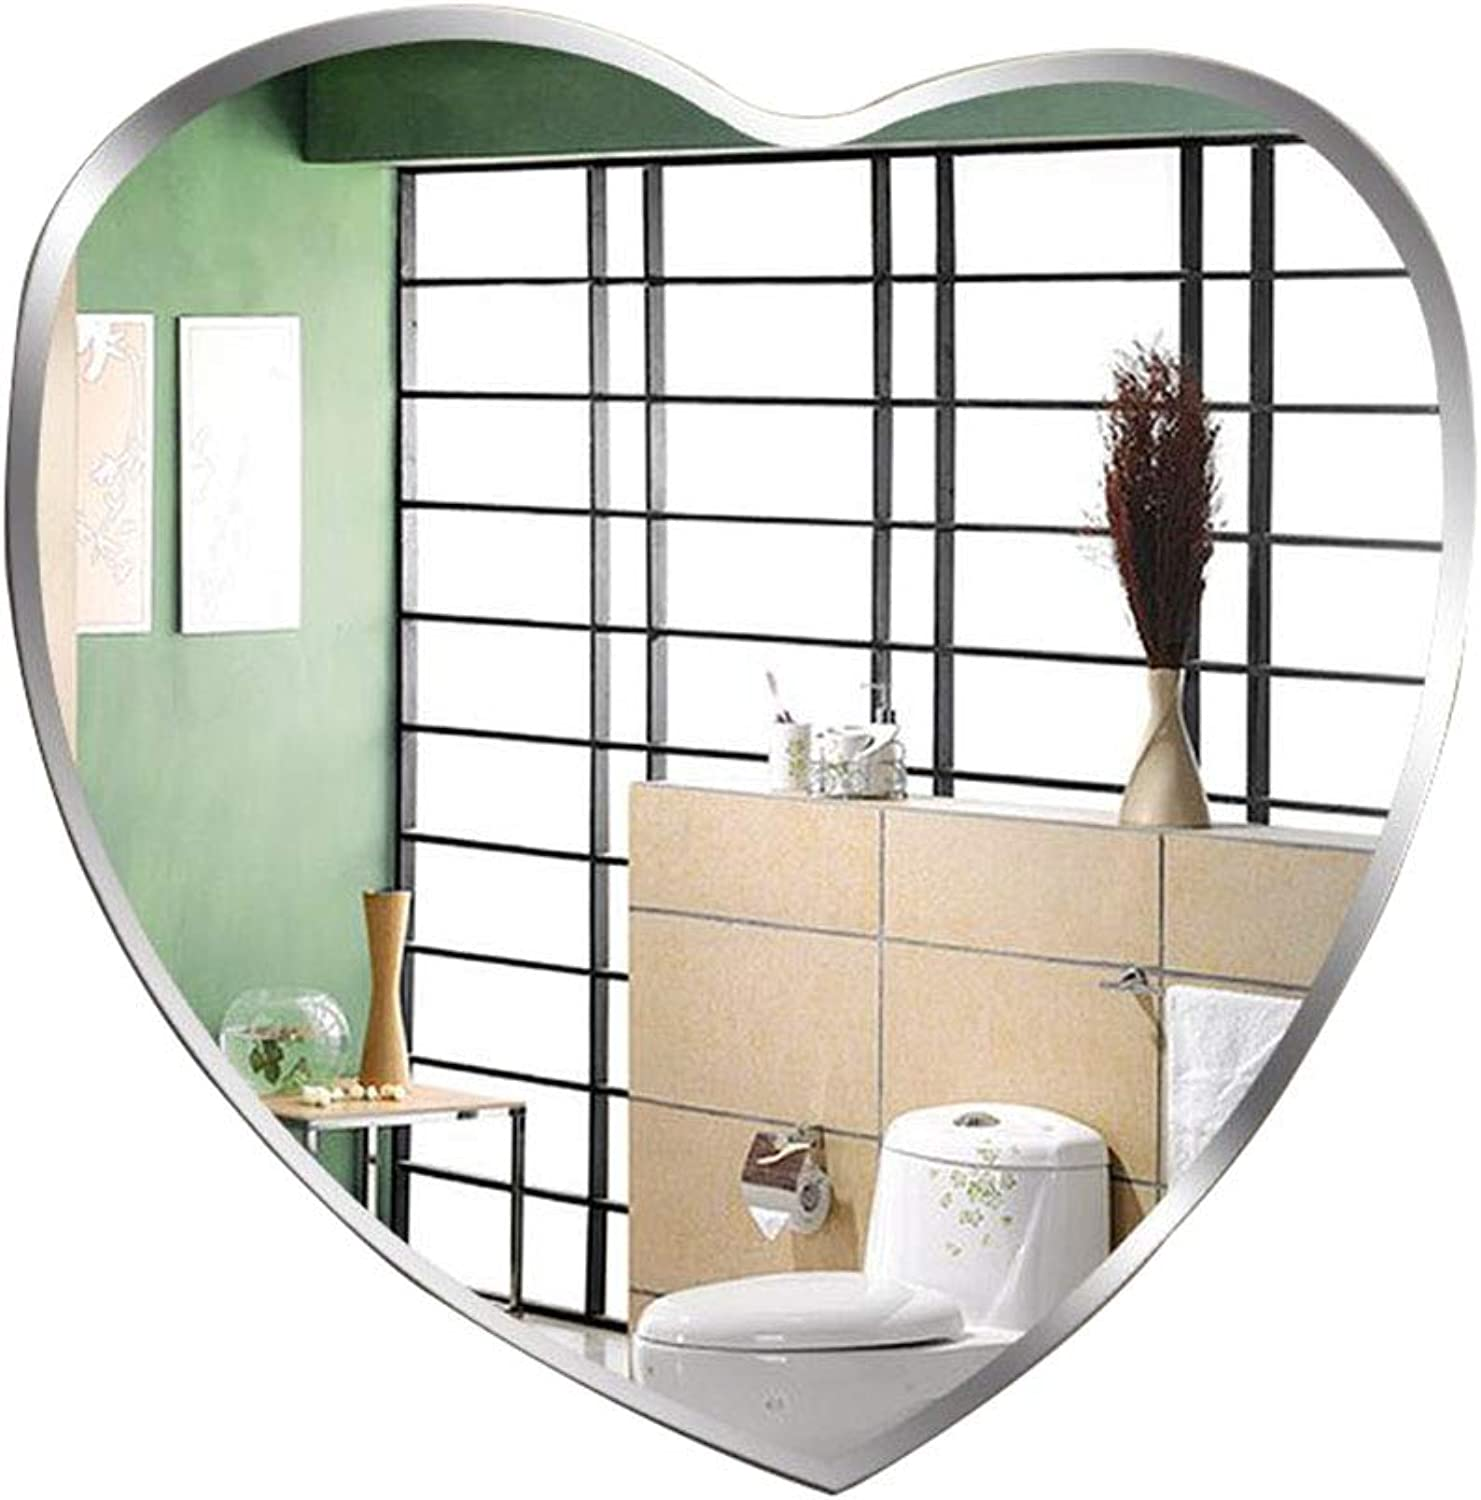 ALY Bathroom Mirror Wall-Mounted Silver Mirror Heart-Shaped Vanity Mirror Simple Modern Frameless Shaving Mirror for Home Hotel (25.19  23.62in)